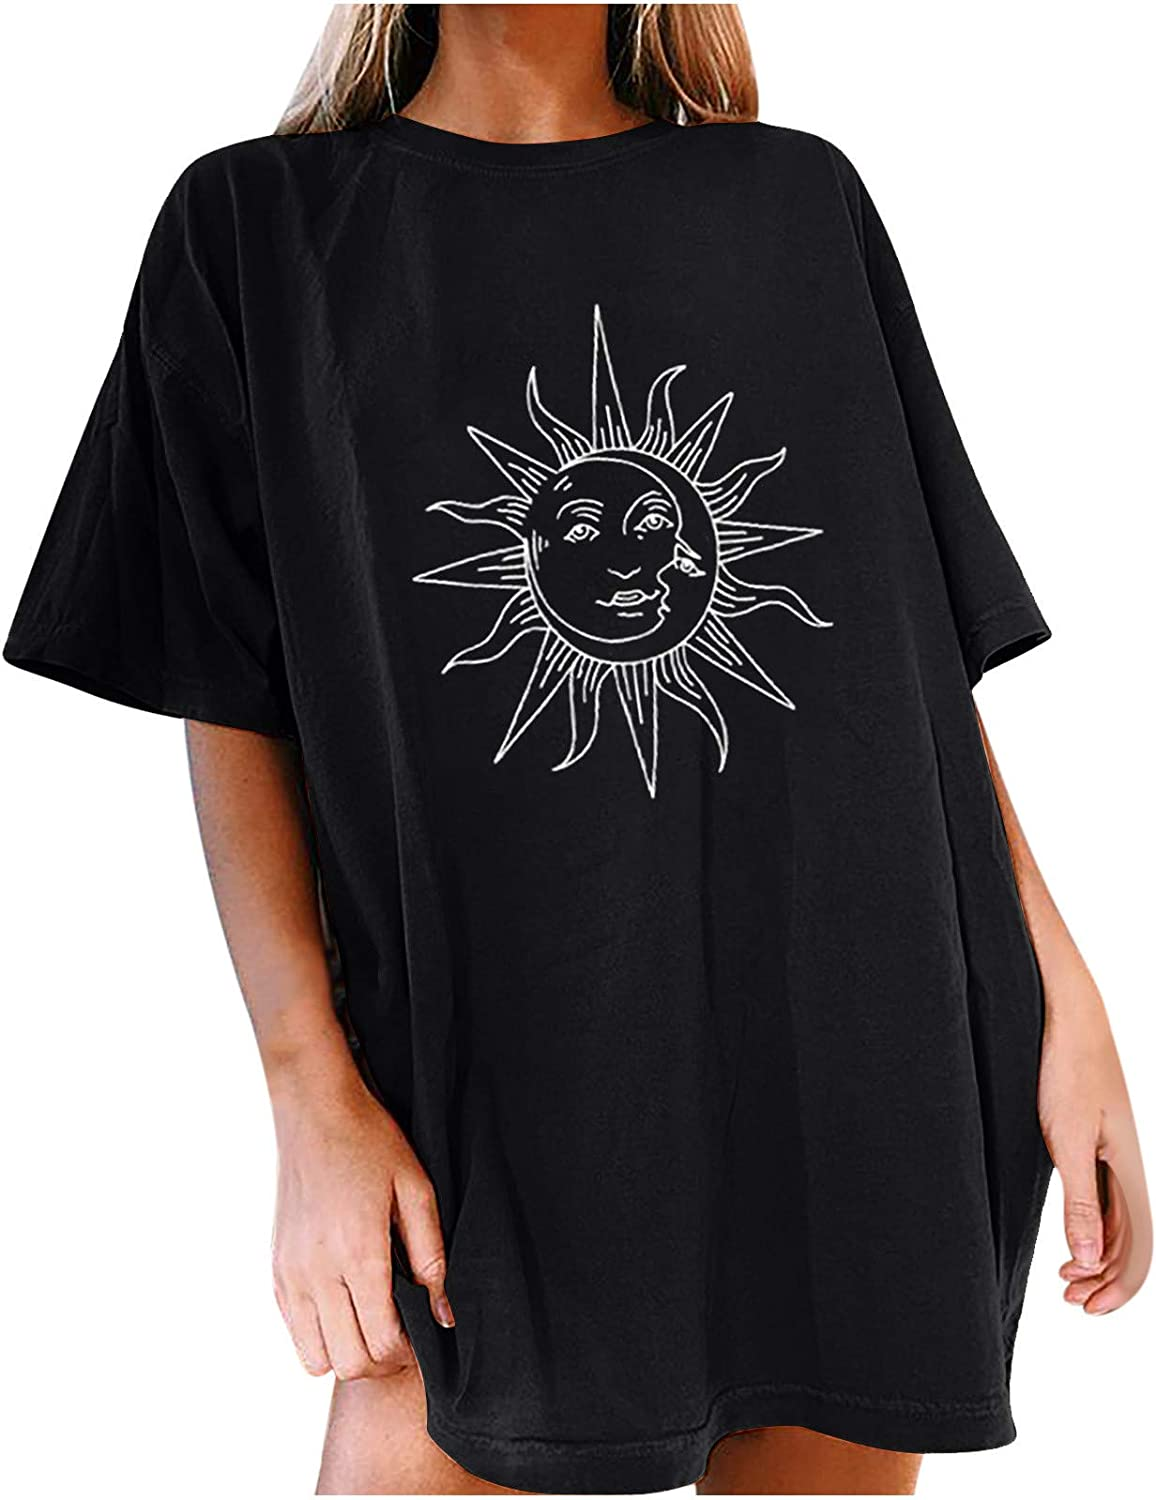 Sun and Moon Graphic Tees for Women Oversized Vintage Trendy Sho